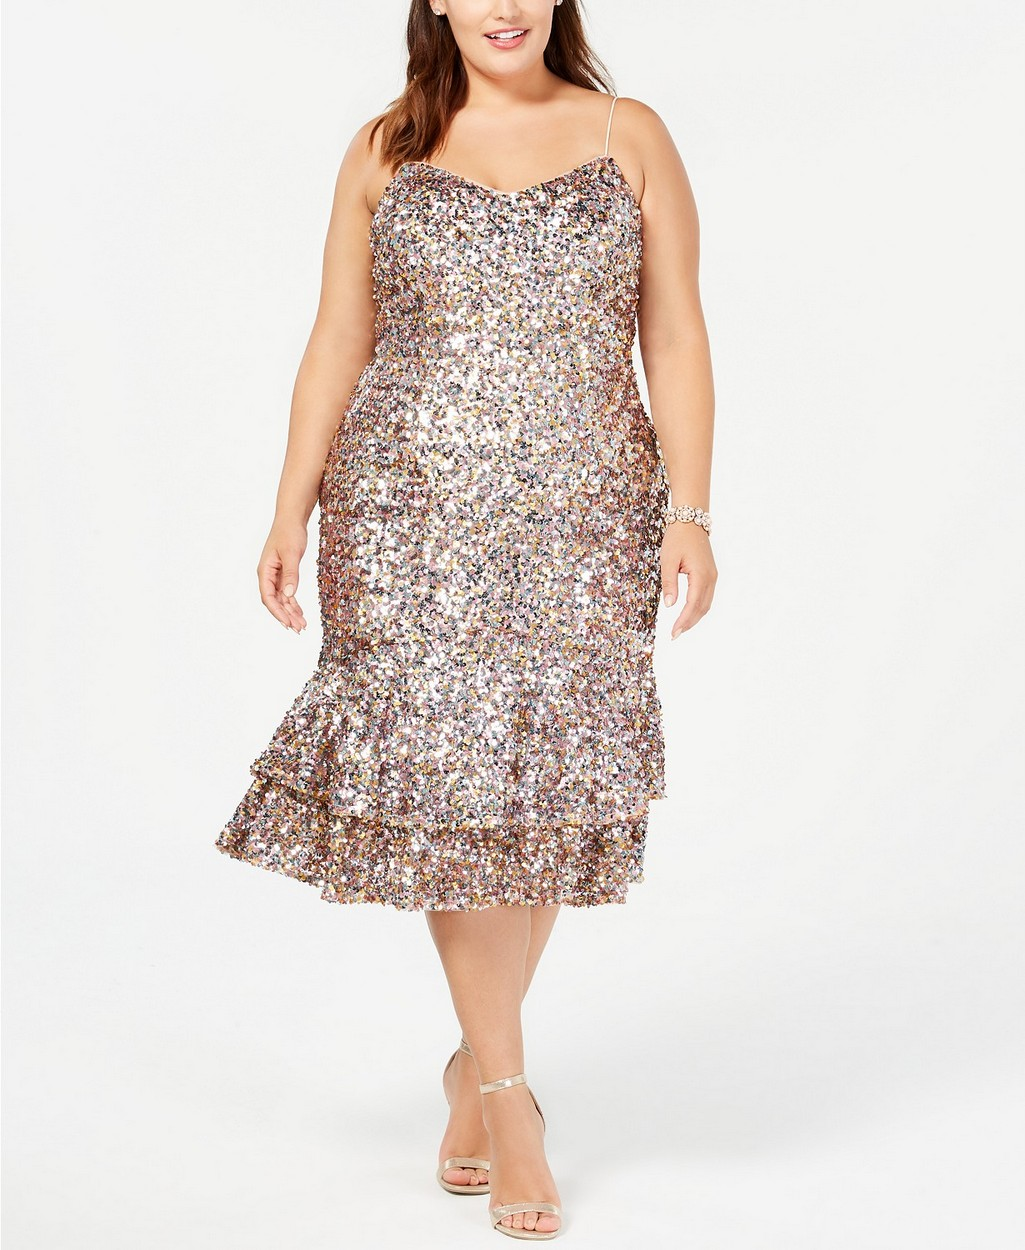 The Best Plus Size Sequins Finds for New Yea's Eve: Plus Size Multicolored Sequin Midi Dress by Adrianna Papell